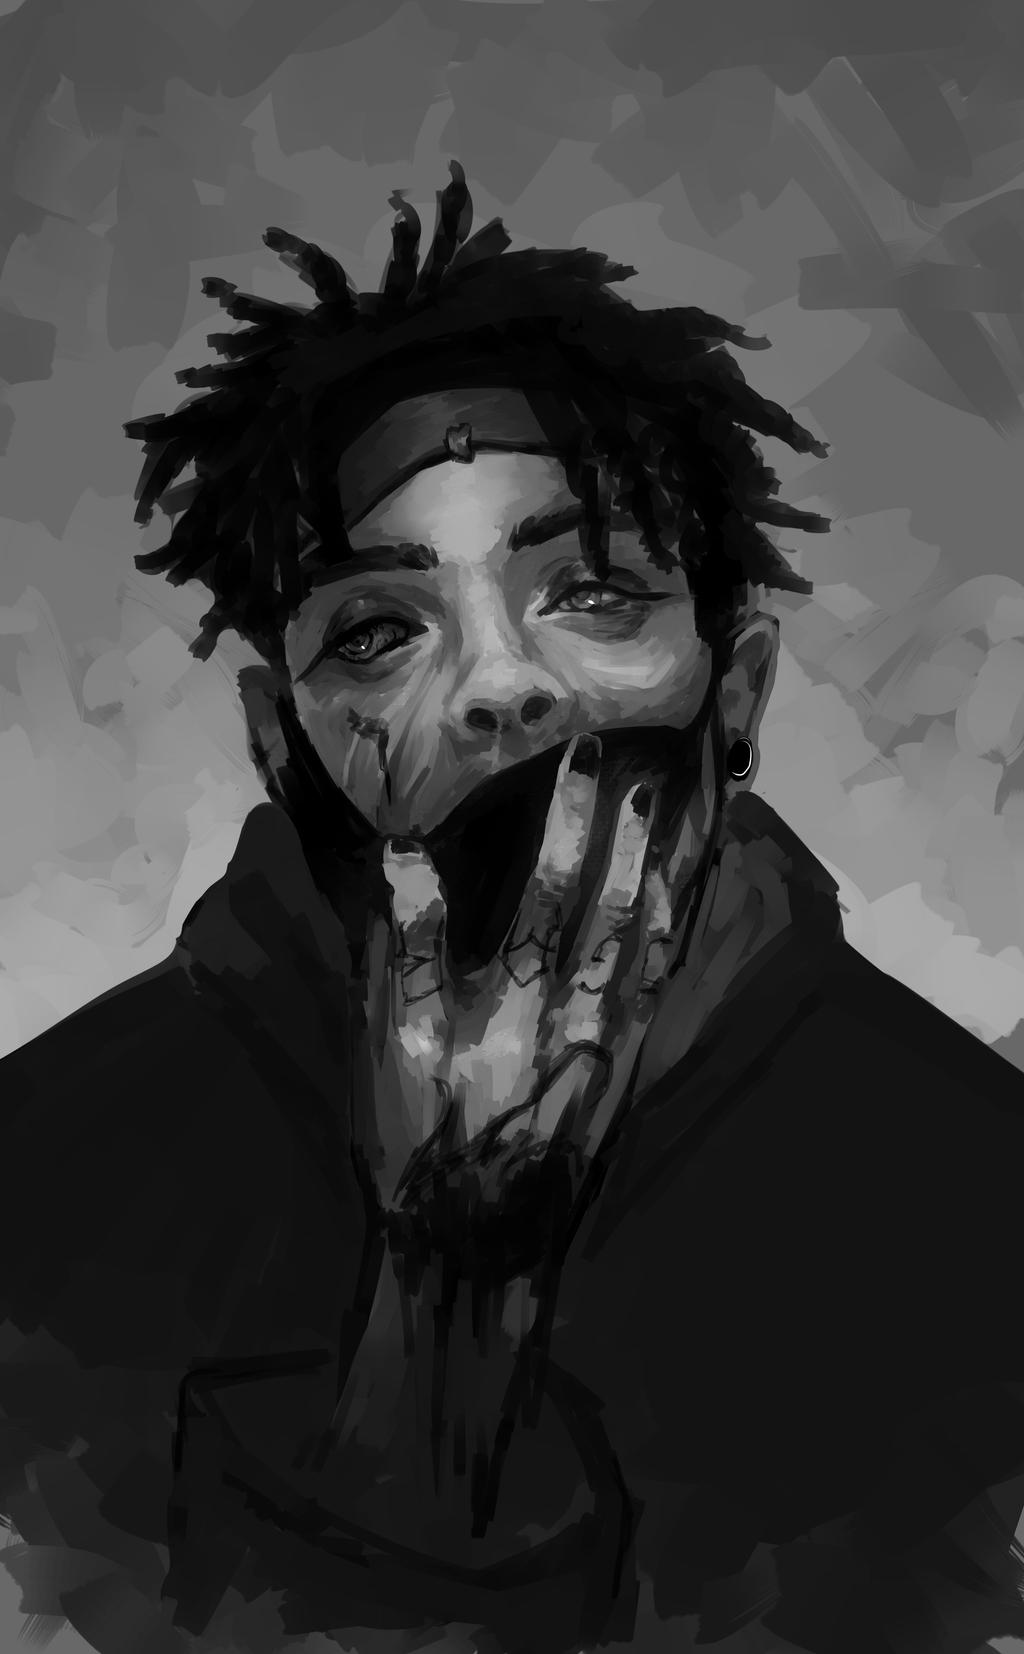 scarlxrd by Petrawithafootfetish on DeviantArt